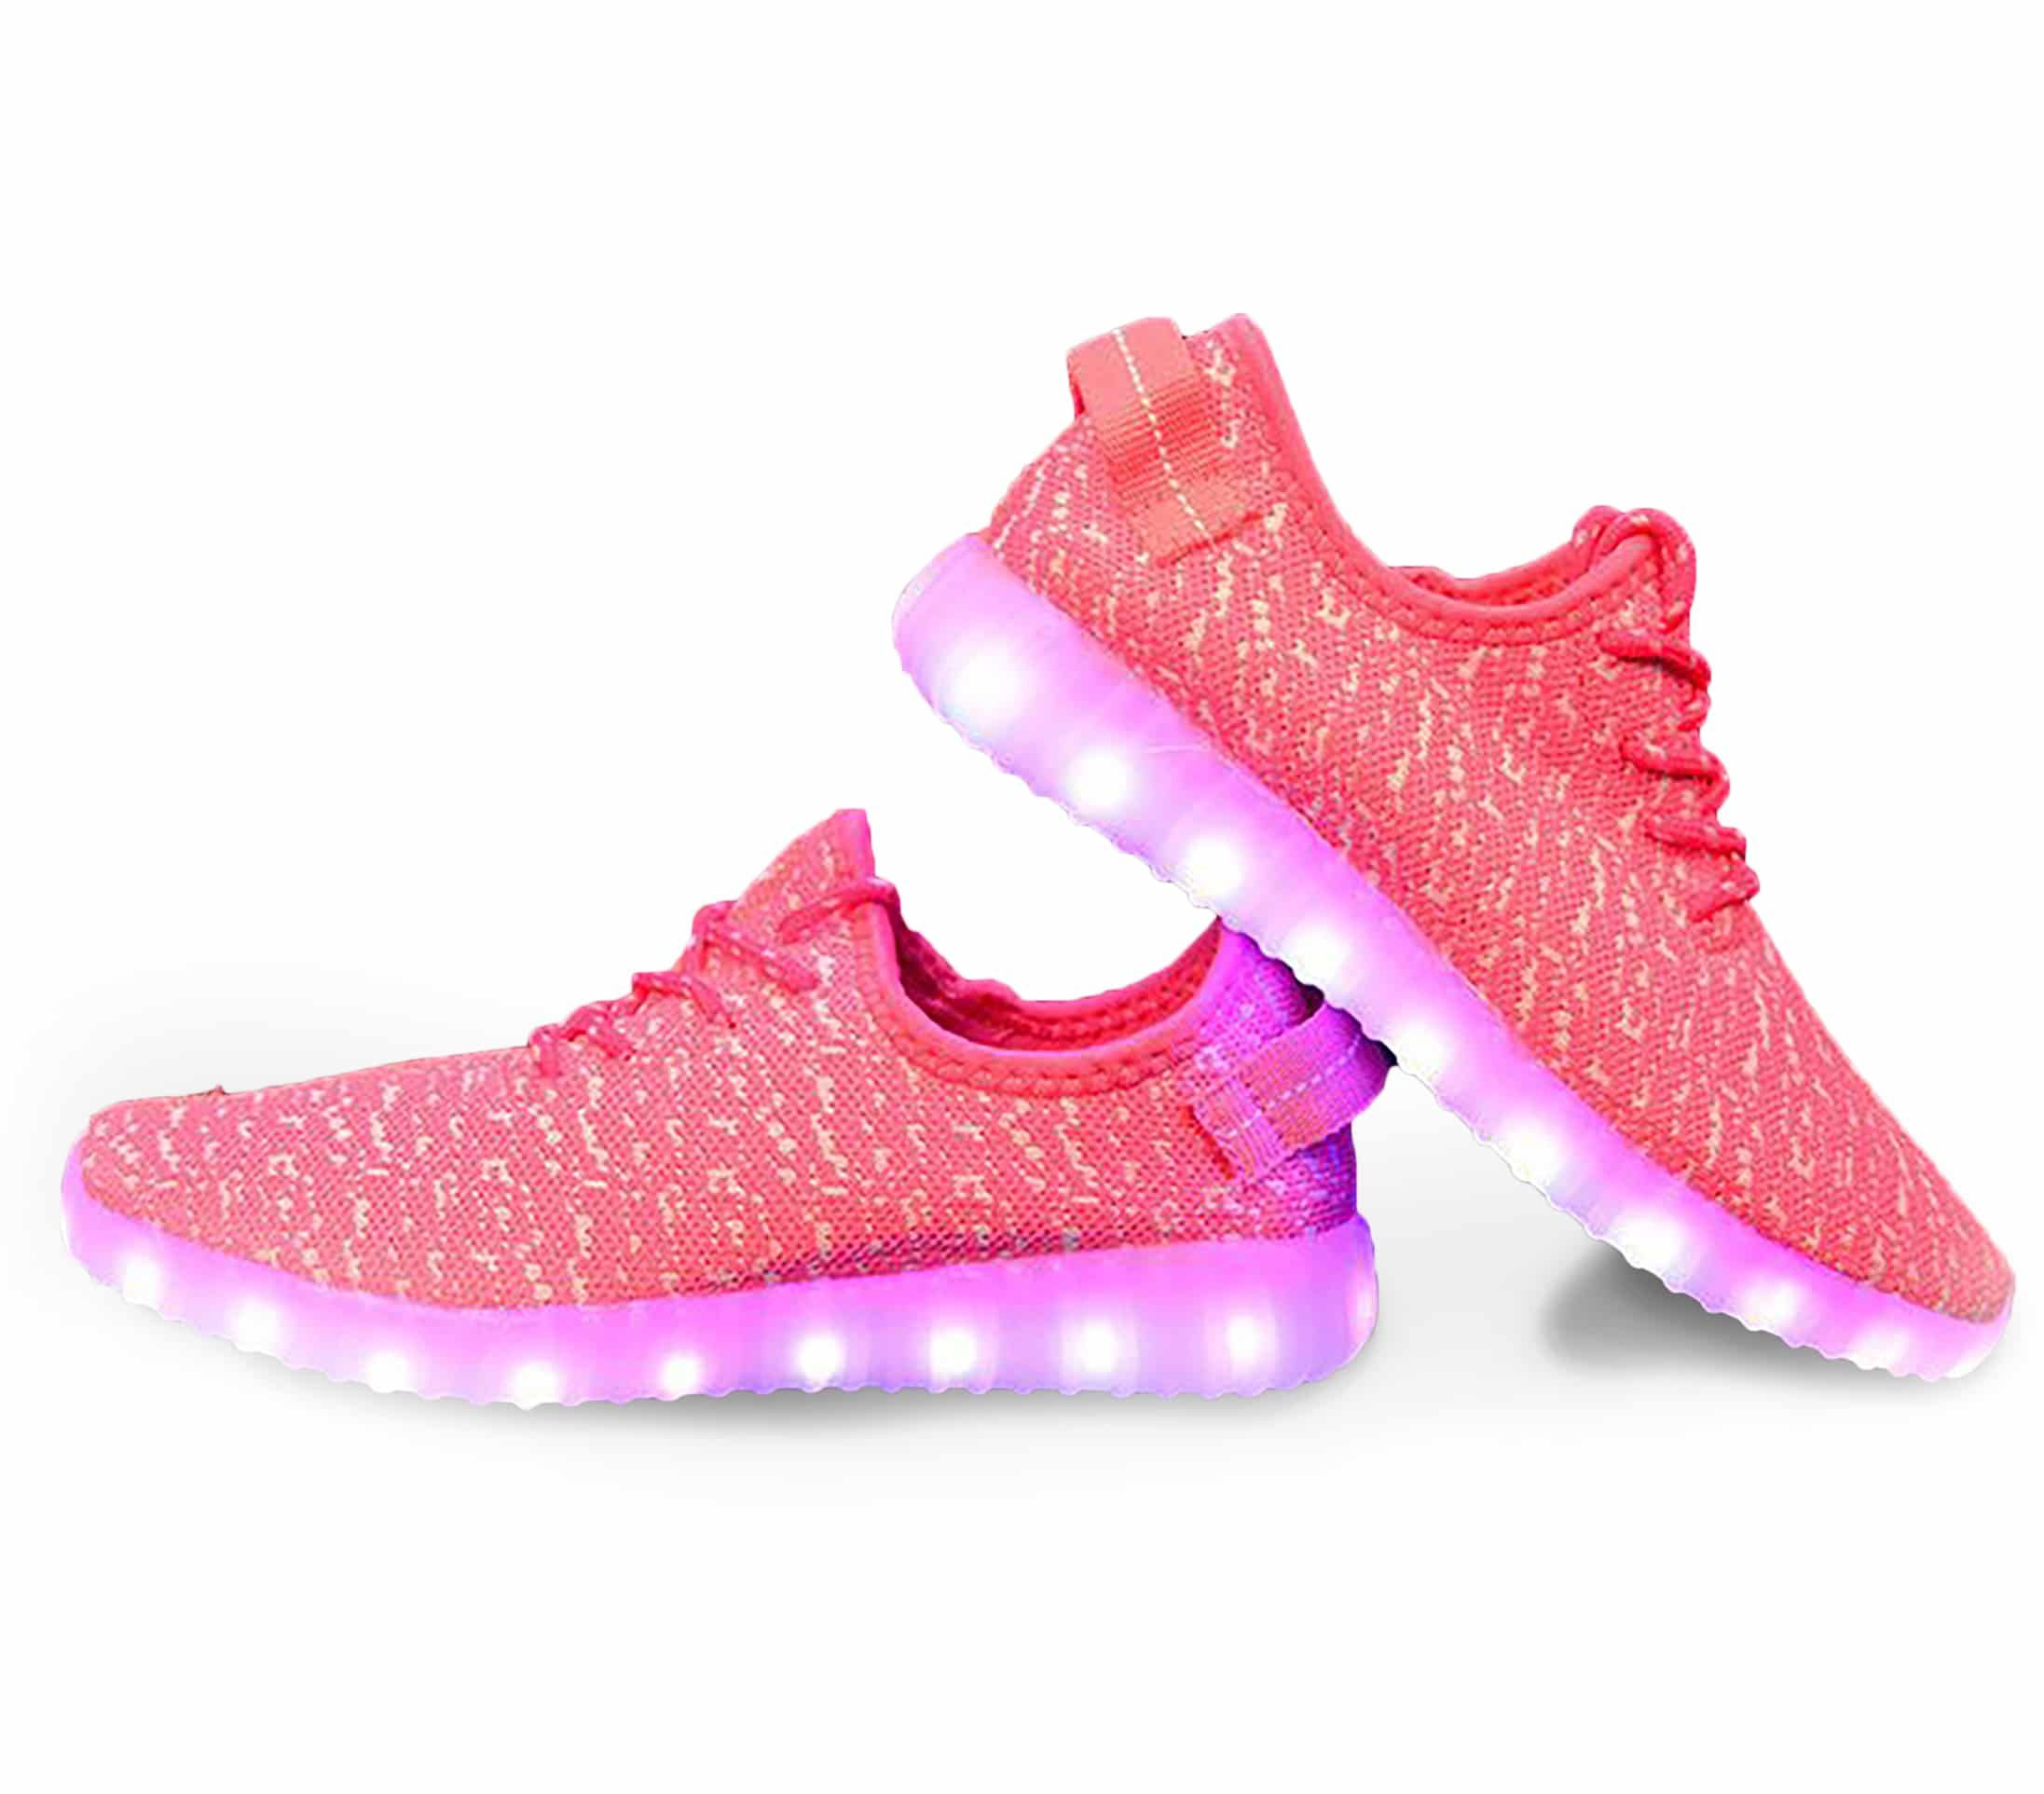 WOMEN'S PINK LED LIGHT UP TRAINERS